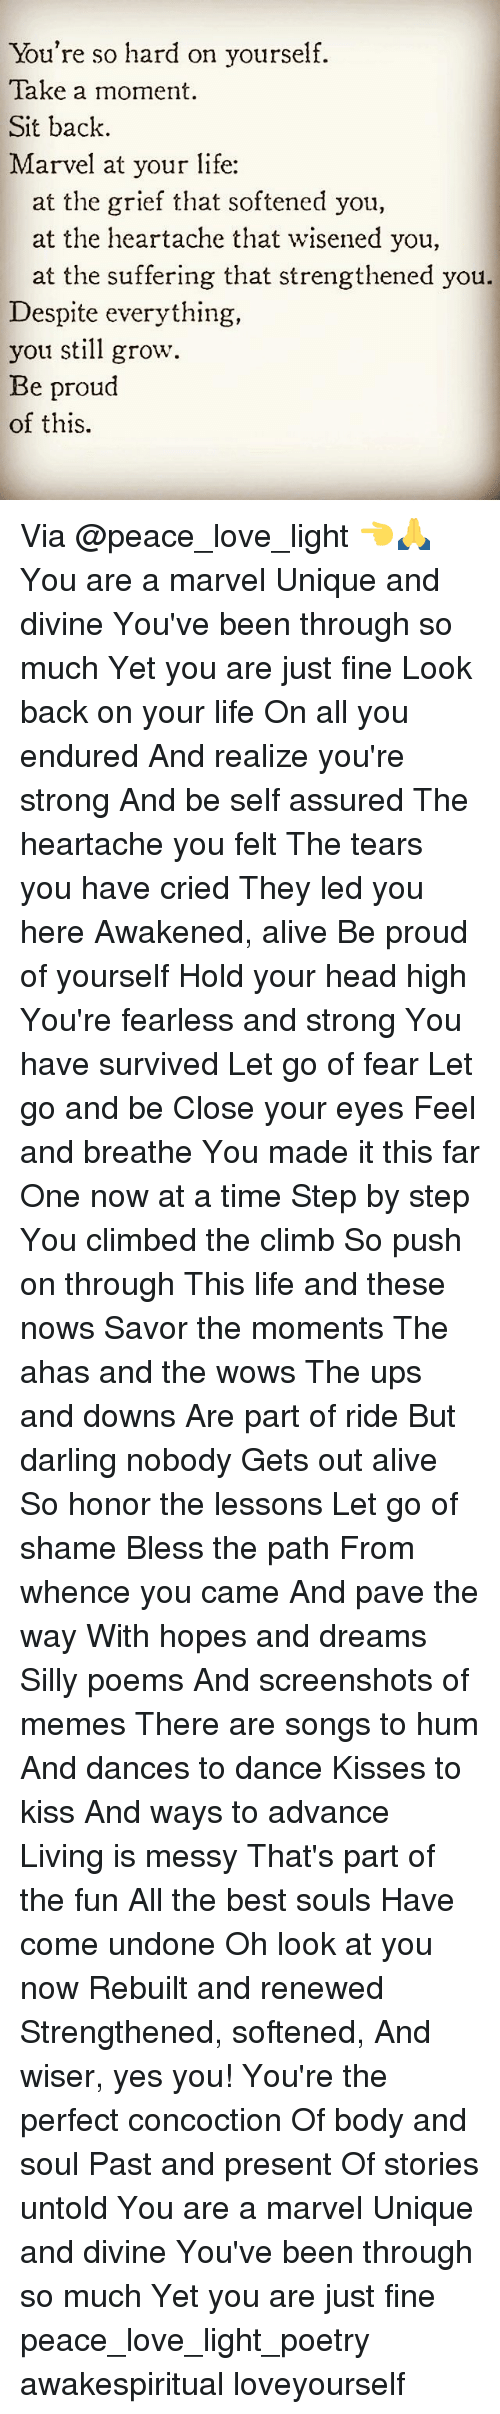 Lessoned: You're so hard on yourself.  Take a moment  Sit back.  Marvel at your life:  at the grief that softened you,  at the heartache that wisened you,  at the suffering that strengthened you.  Despite everything,  you still grow  Be proud  of this. Via @peace_love_light 👈🙏 You are a marvel Unique and divine You've been through so much Yet you are just fine Look back on your life On all you endured And realize you're strong And be self assured The heartache you felt The tears you have cried They led you here Awakened, alive Be proud of yourself Hold your head high You're fearless and strong You have survived Let go of fear Let go and be Close your eyes Feel and breathe You made it this far One now at a time Step by step You climbed the climb So push on through This life and these nows Savor the moments The ahas and the wows The ups and downs Are part of ride But darling nobody Gets out alive So honor the lessons Let go of shame Bless the path From whence you came And pave the way With hopes and dreams Silly poems And screenshots of memes There are songs to hum And dances to dance Kisses to kiss And ways to advance Living is messy That's part of the fun All the best souls Have come undone Oh look at you now Rebuilt and renewed Strengthened, softened, And wiser, yes you! You're the perfect concoction Of body and soul Past and present Of stories untold You are a marvel Unique and divine You've been through so much Yet you are just fine peace_love_light_poetry awakespiritual loveyourself